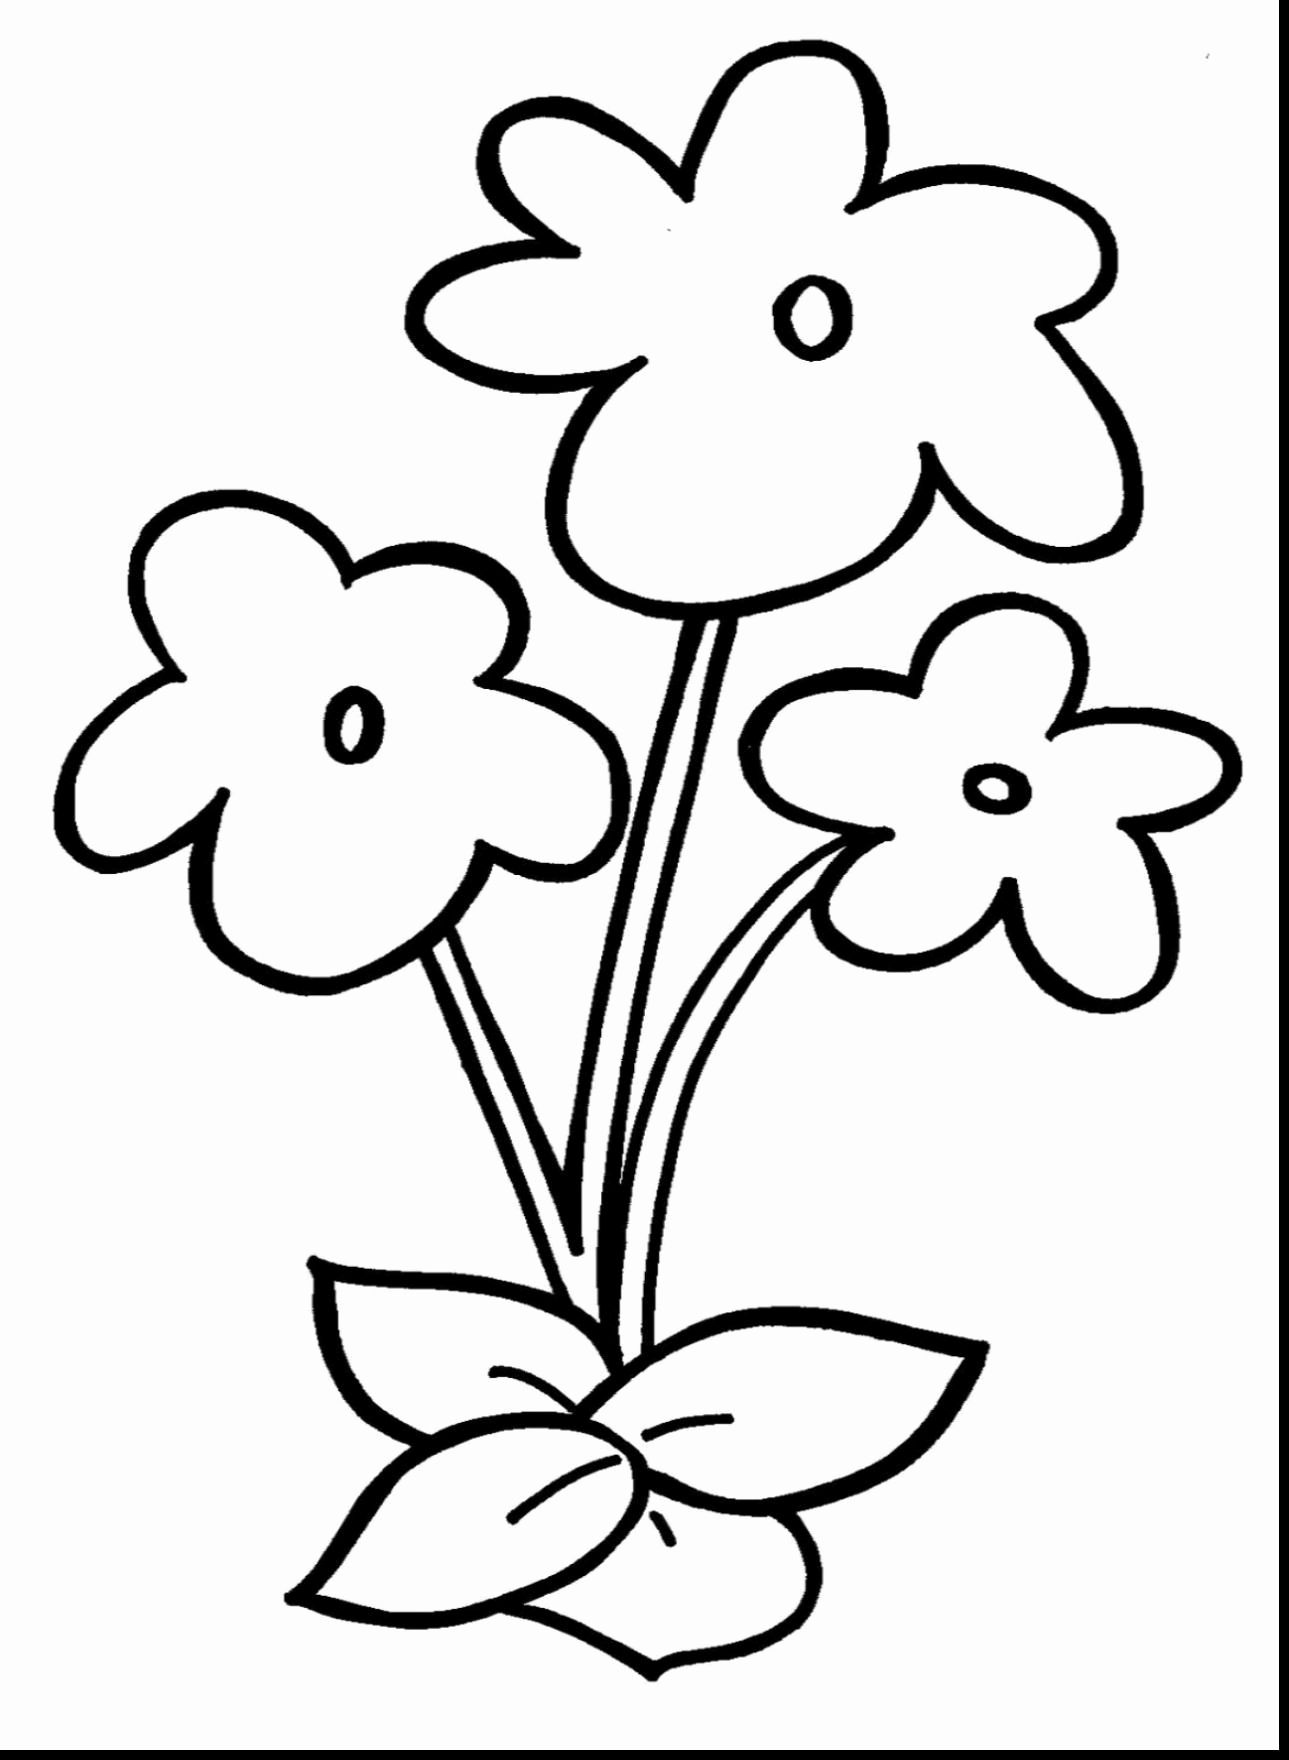 Pdf Flower Coloring Pages Kids Flower Coloring Pages Printable Flower Coloring Pages Flower Printable